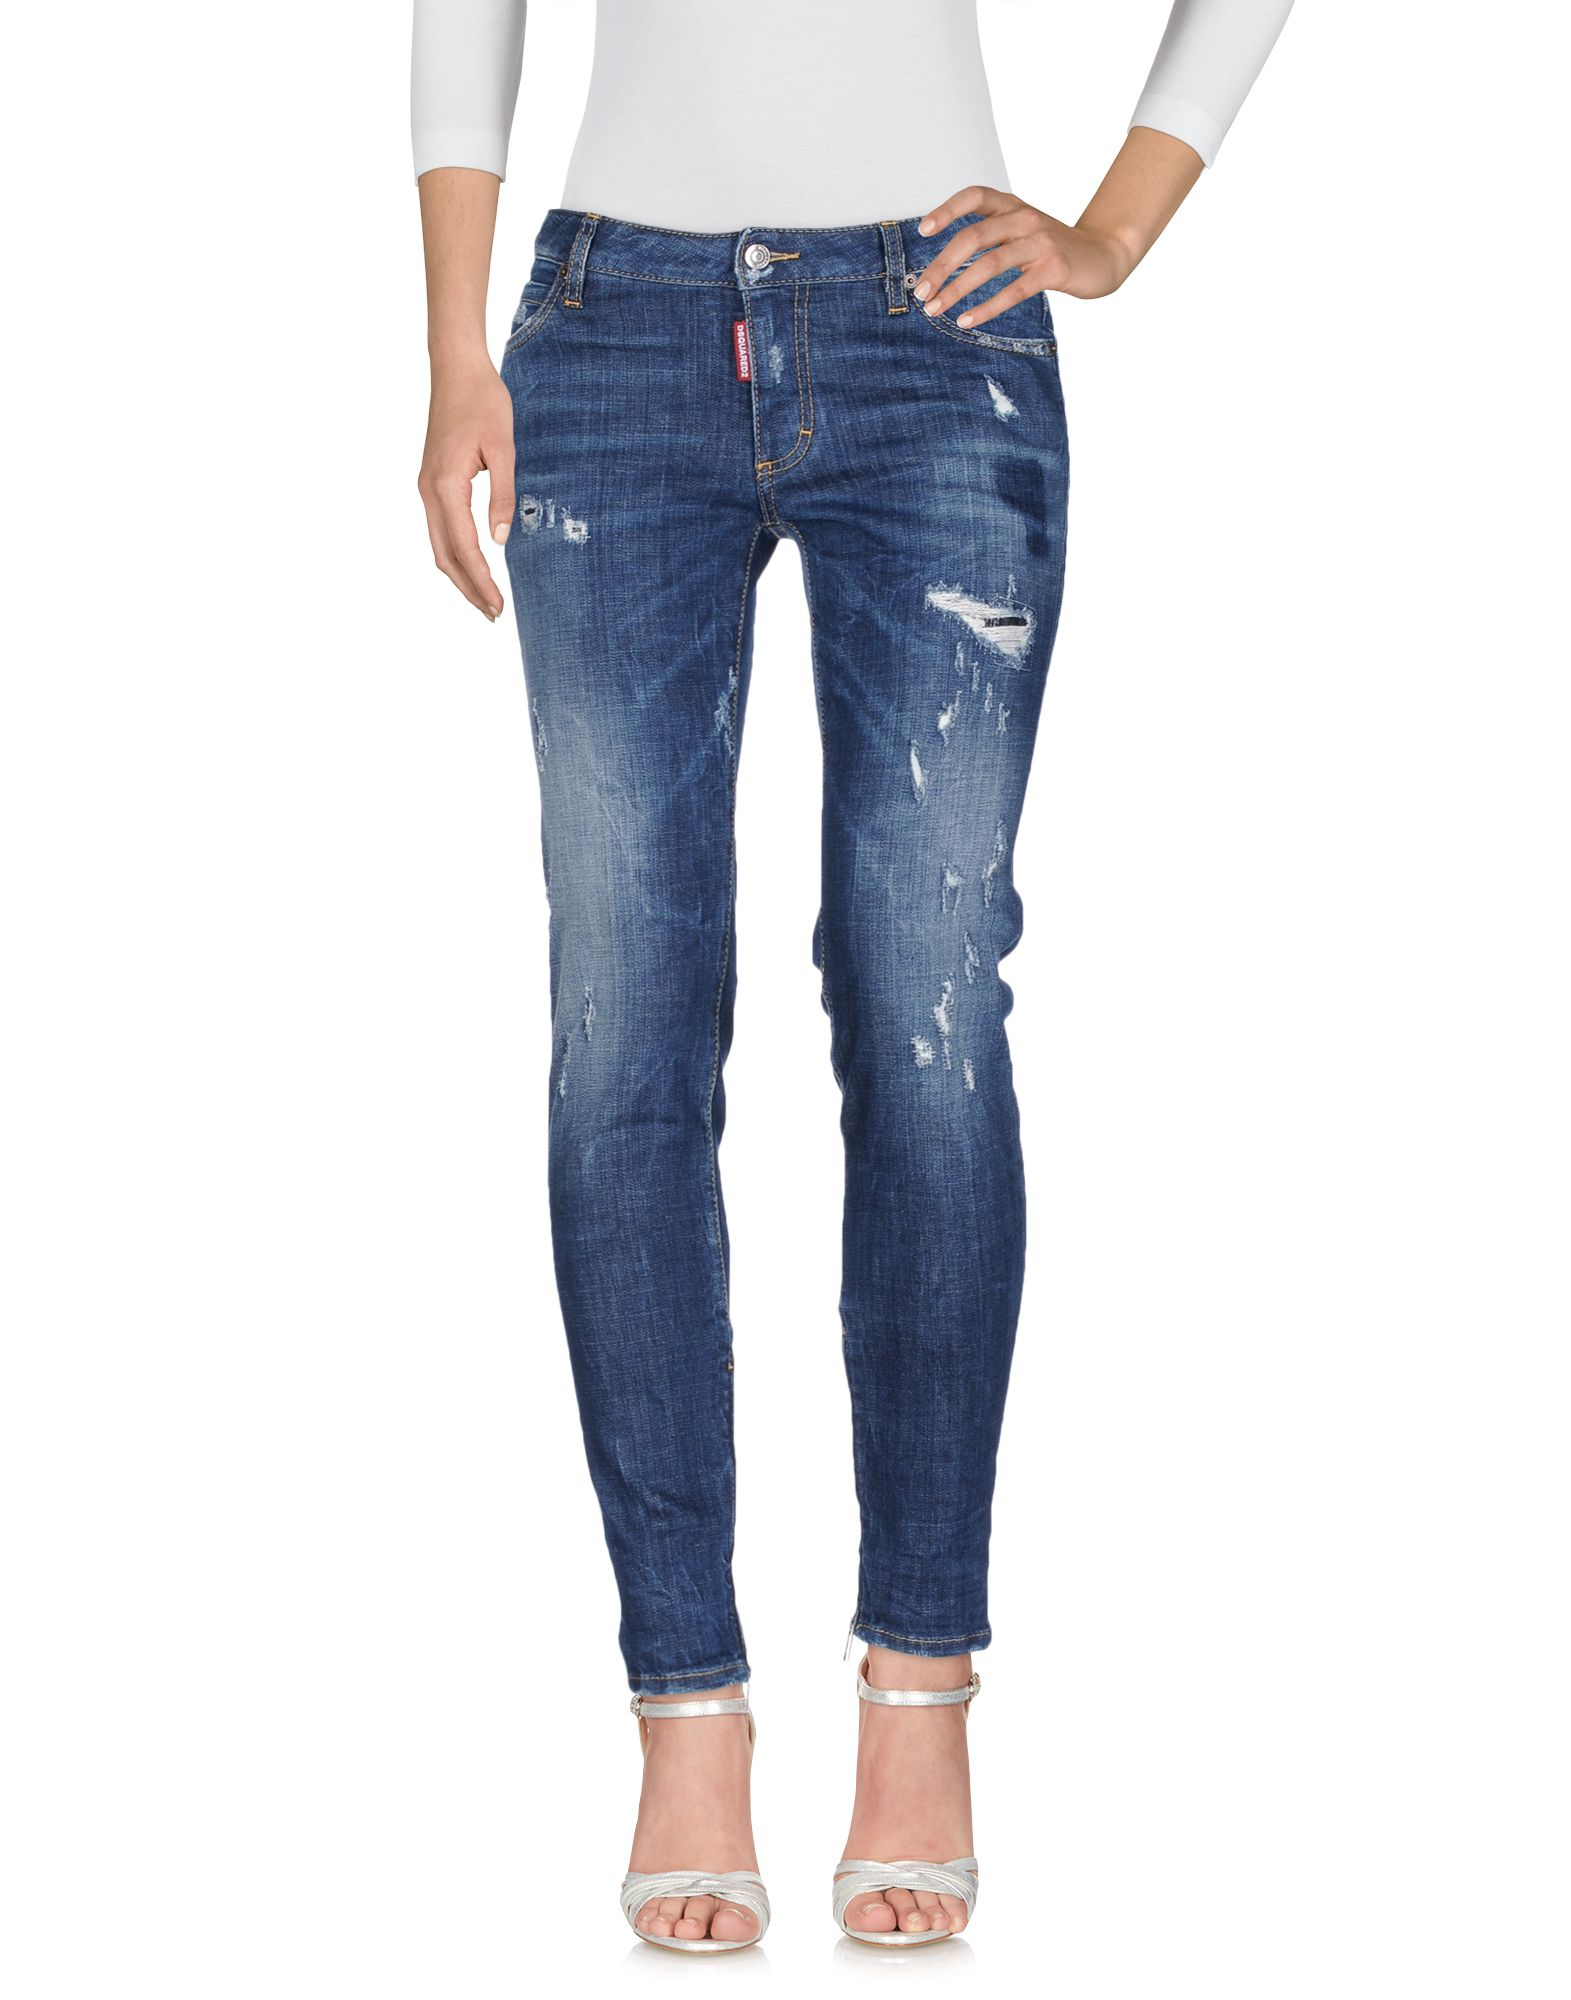 Pantaloni Jeans Dsquared2 Donna - Acquista online su ITP1fLcOYU